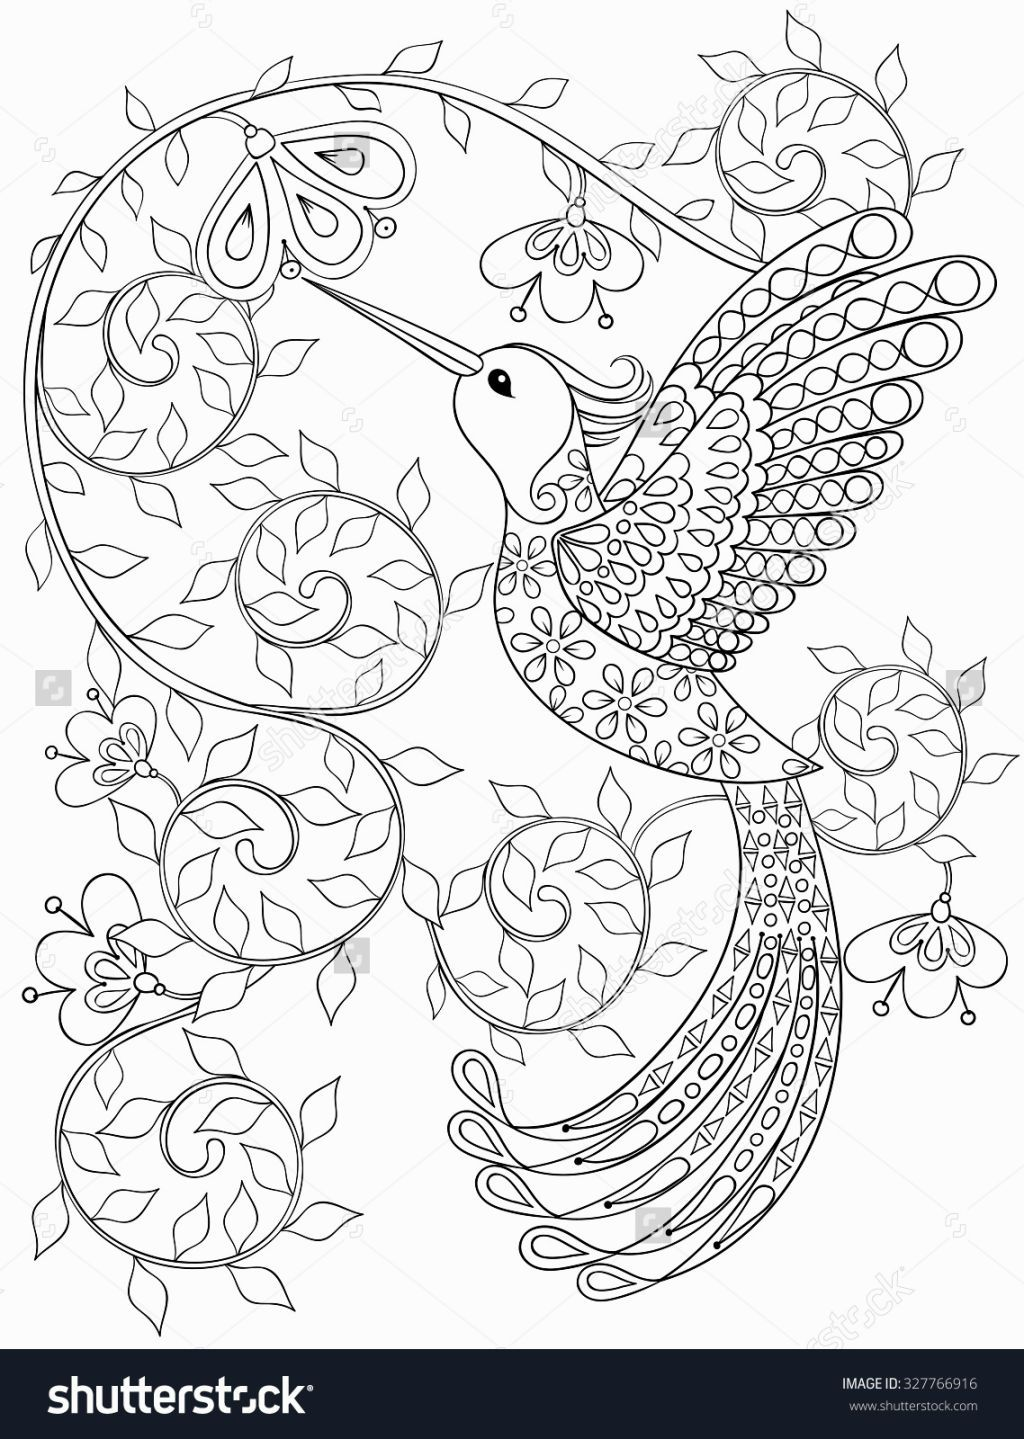 Coloring Book Hummingbird Coloring Pages Pinterest Adult